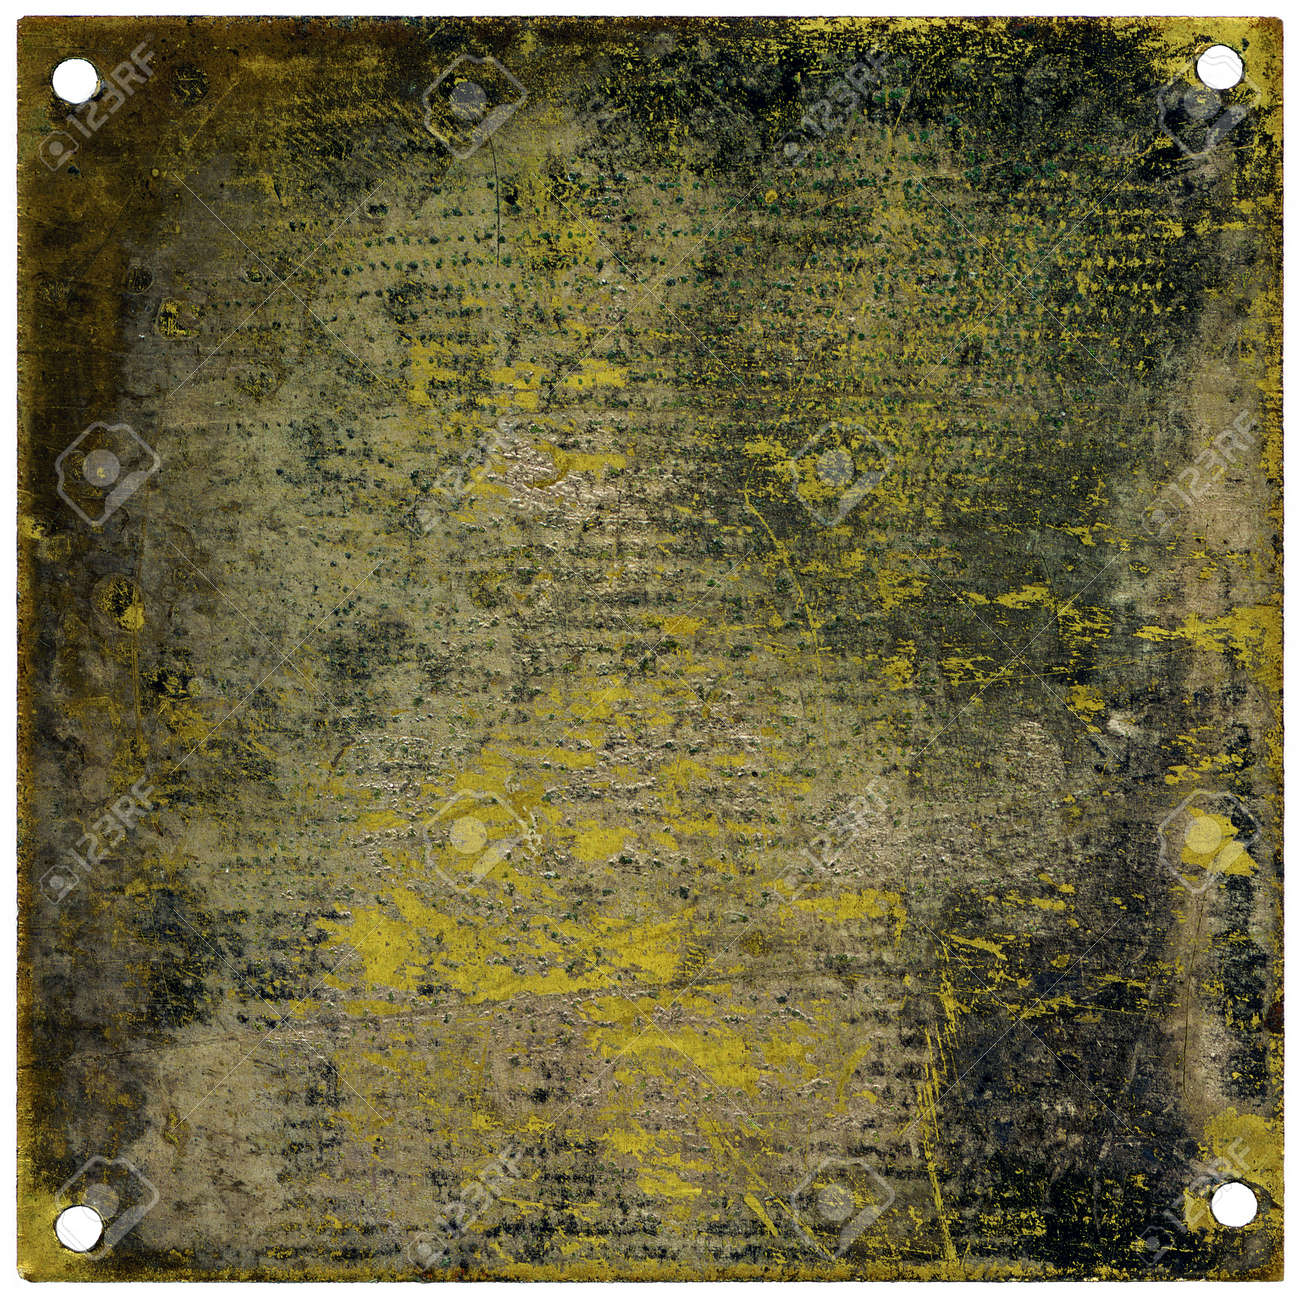 Rustic metal plate with copy space - grainy surface Stock Photo - 10524134